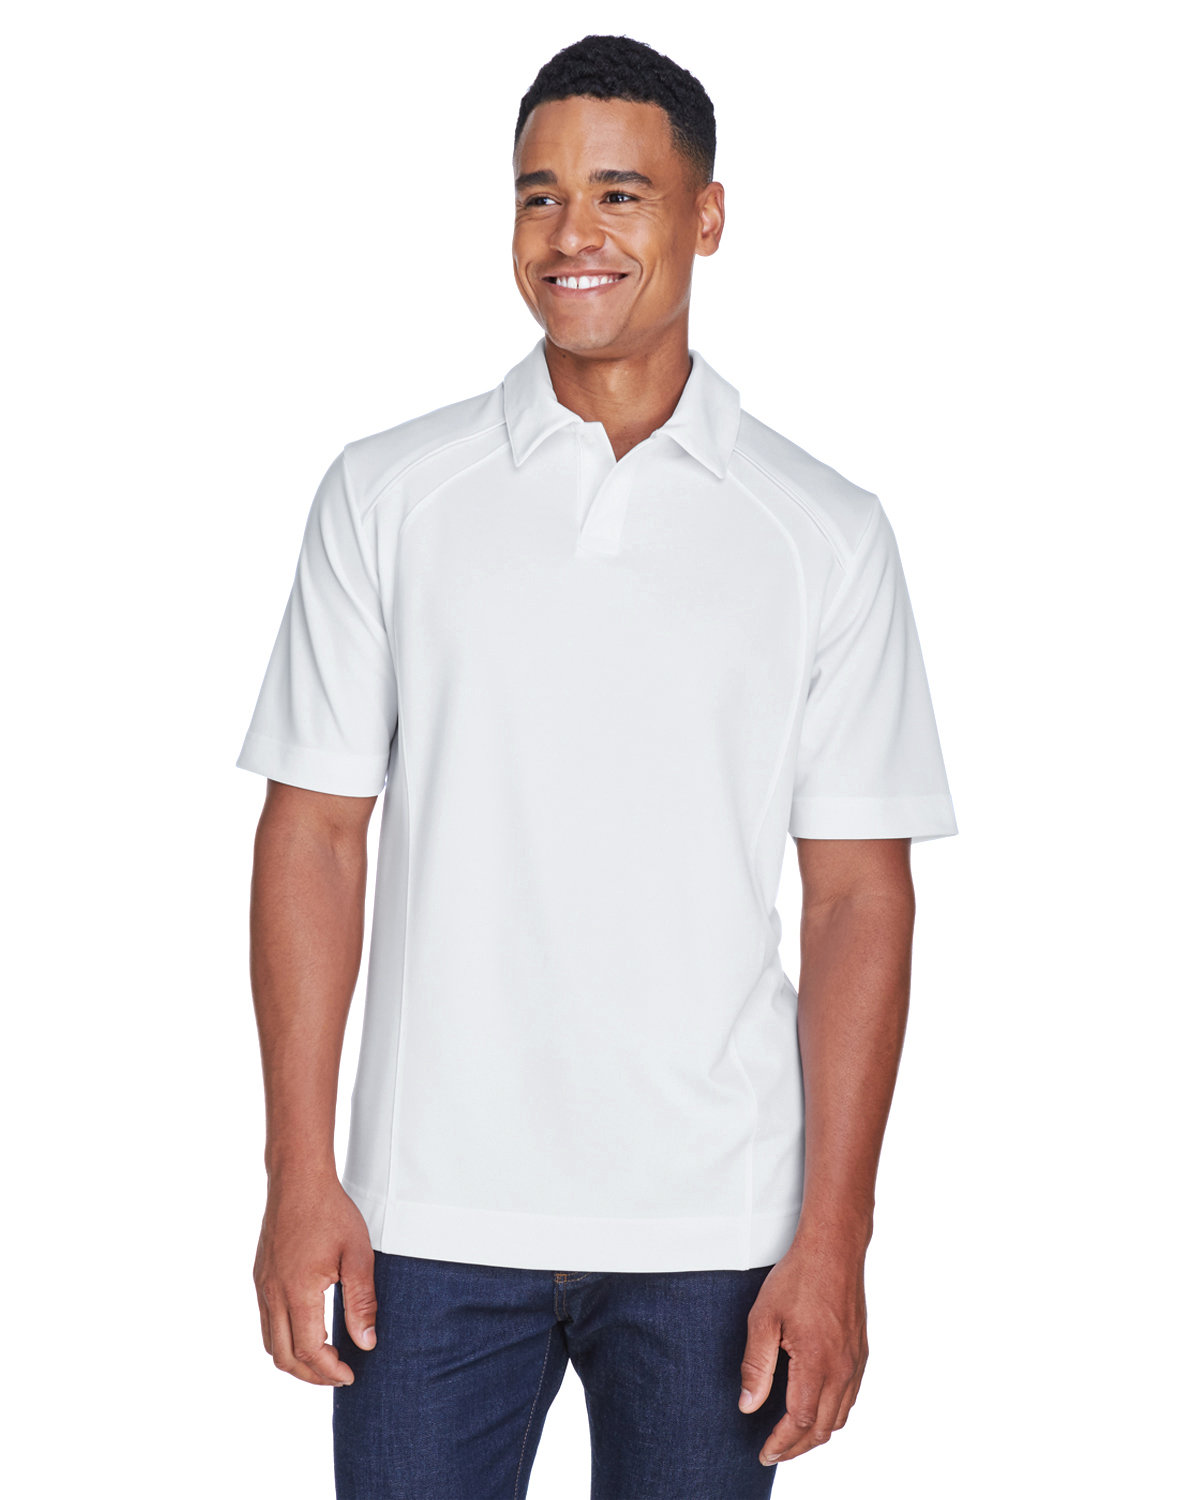 North End Men's Recycled Polyester Performance Piqué Polo WHITE